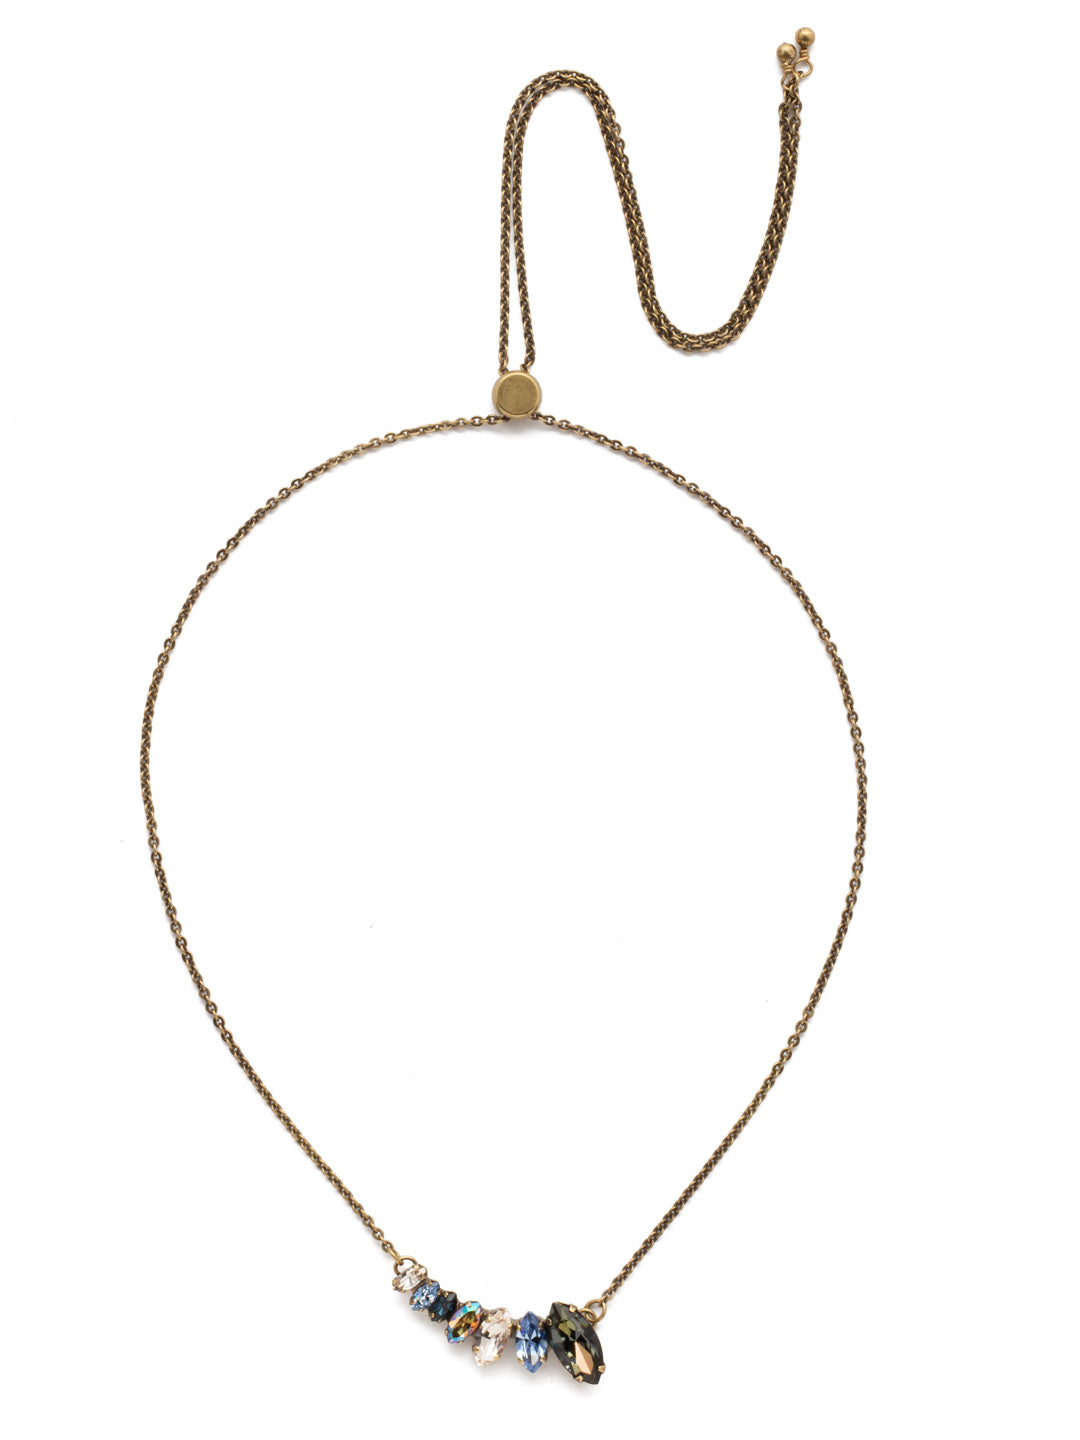 Camille Tennis Necklace - NEP7AGSDE